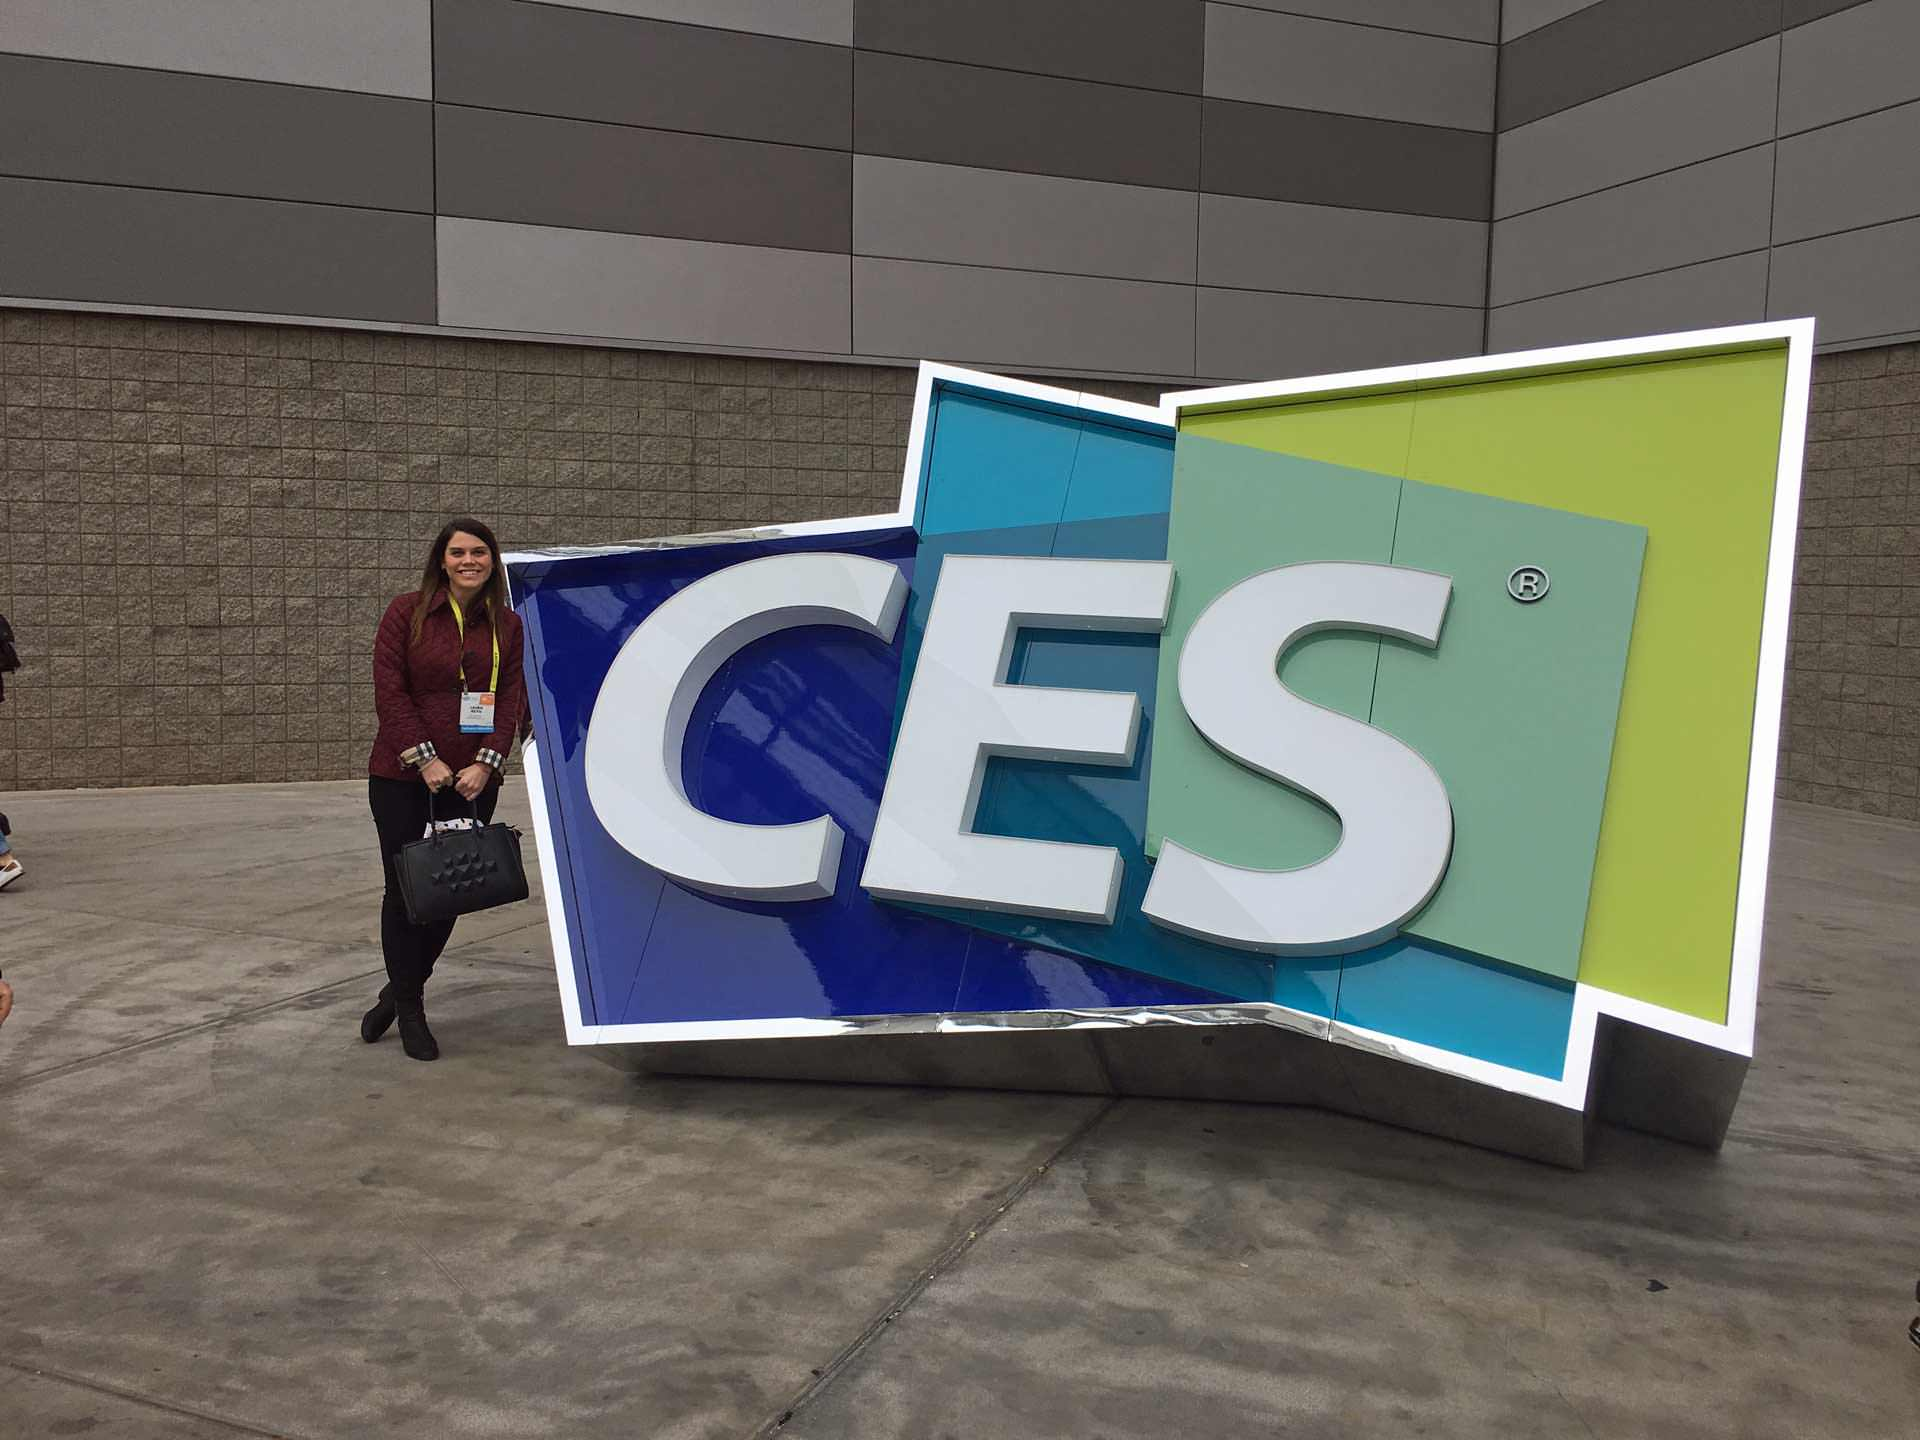 CES - Consumer Electronic Show